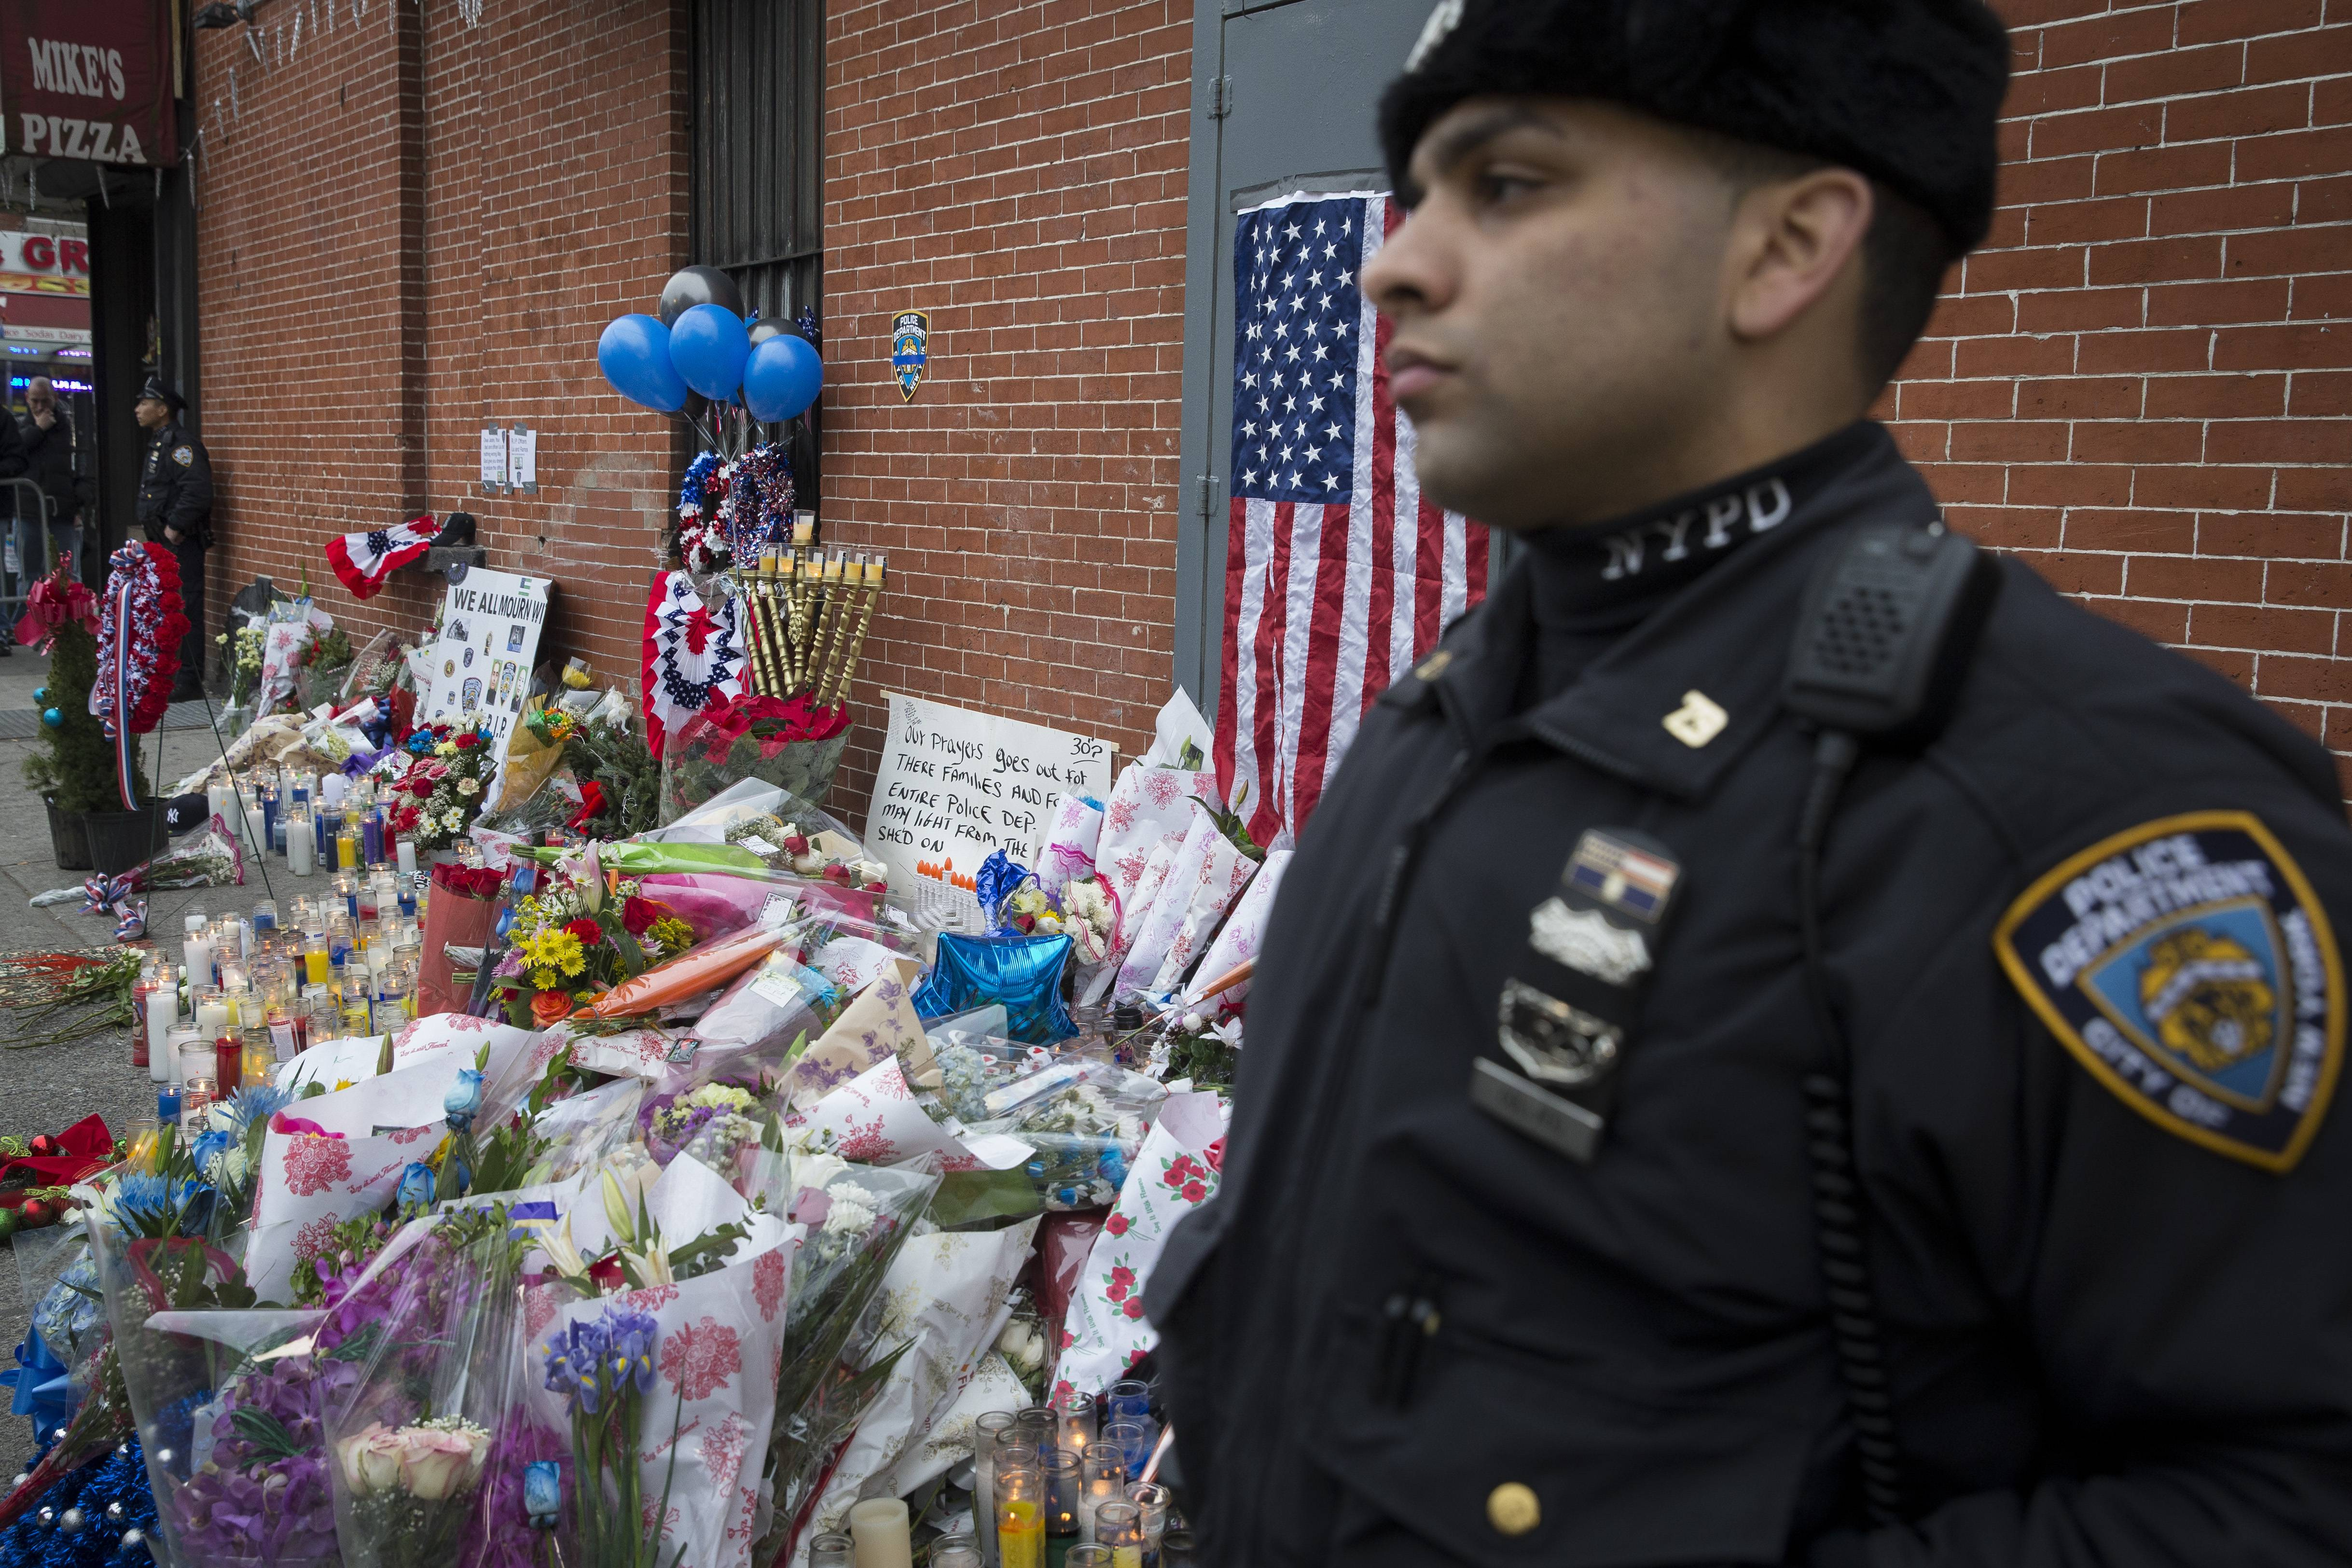 A New York Police Department officer stands guard beside a makeshift memorial Monday near the site where officers Rafael Ramos and Wenjian Liu were murdered in the Brooklyn borough of New York. Seven people have been charged with making threats against New York police officers in the days since the slayings of the two officers.